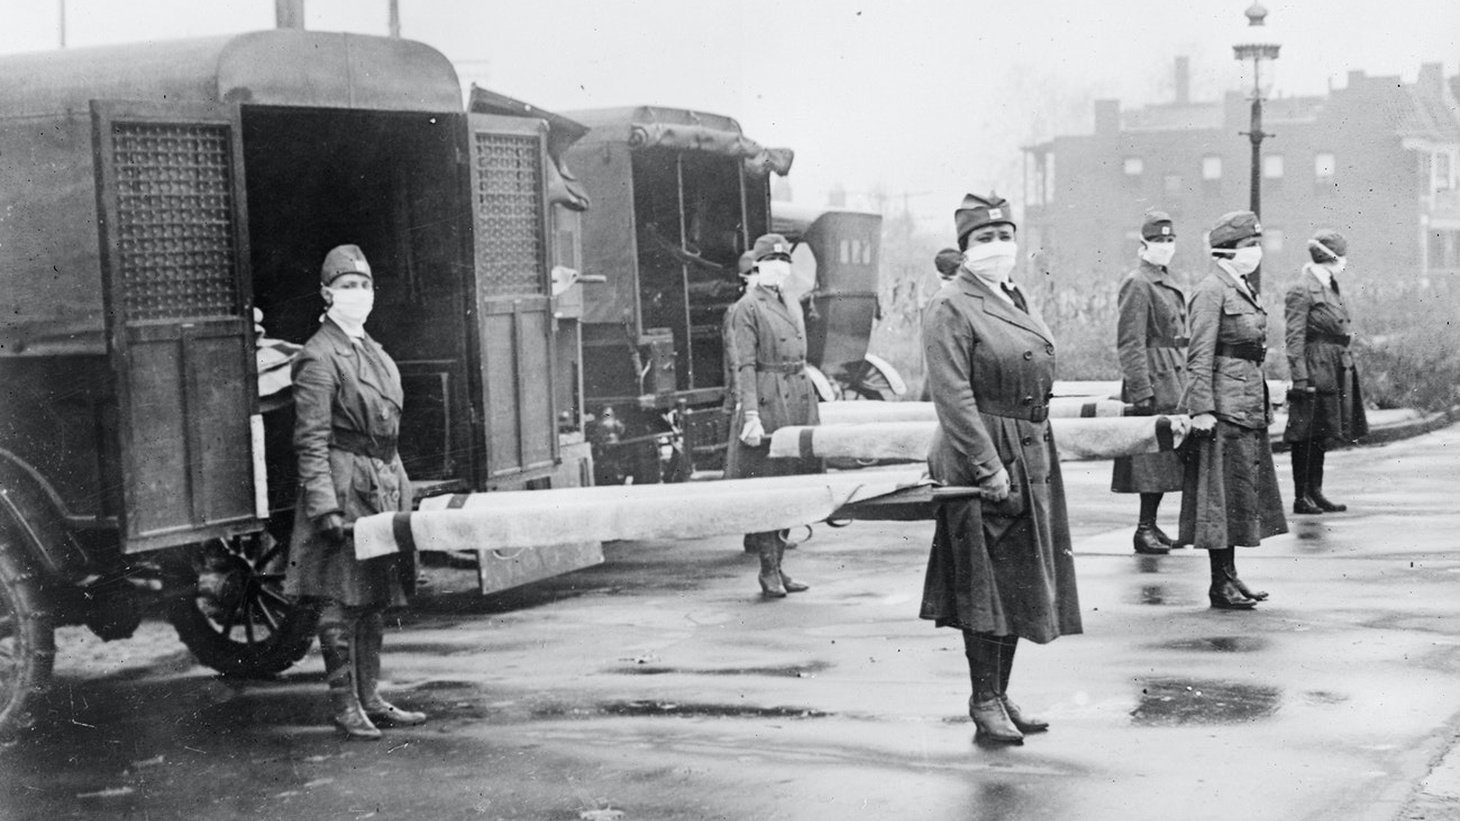 St. Louis Red Cross Motor Corps on duty during influenza epidemic, 1918.